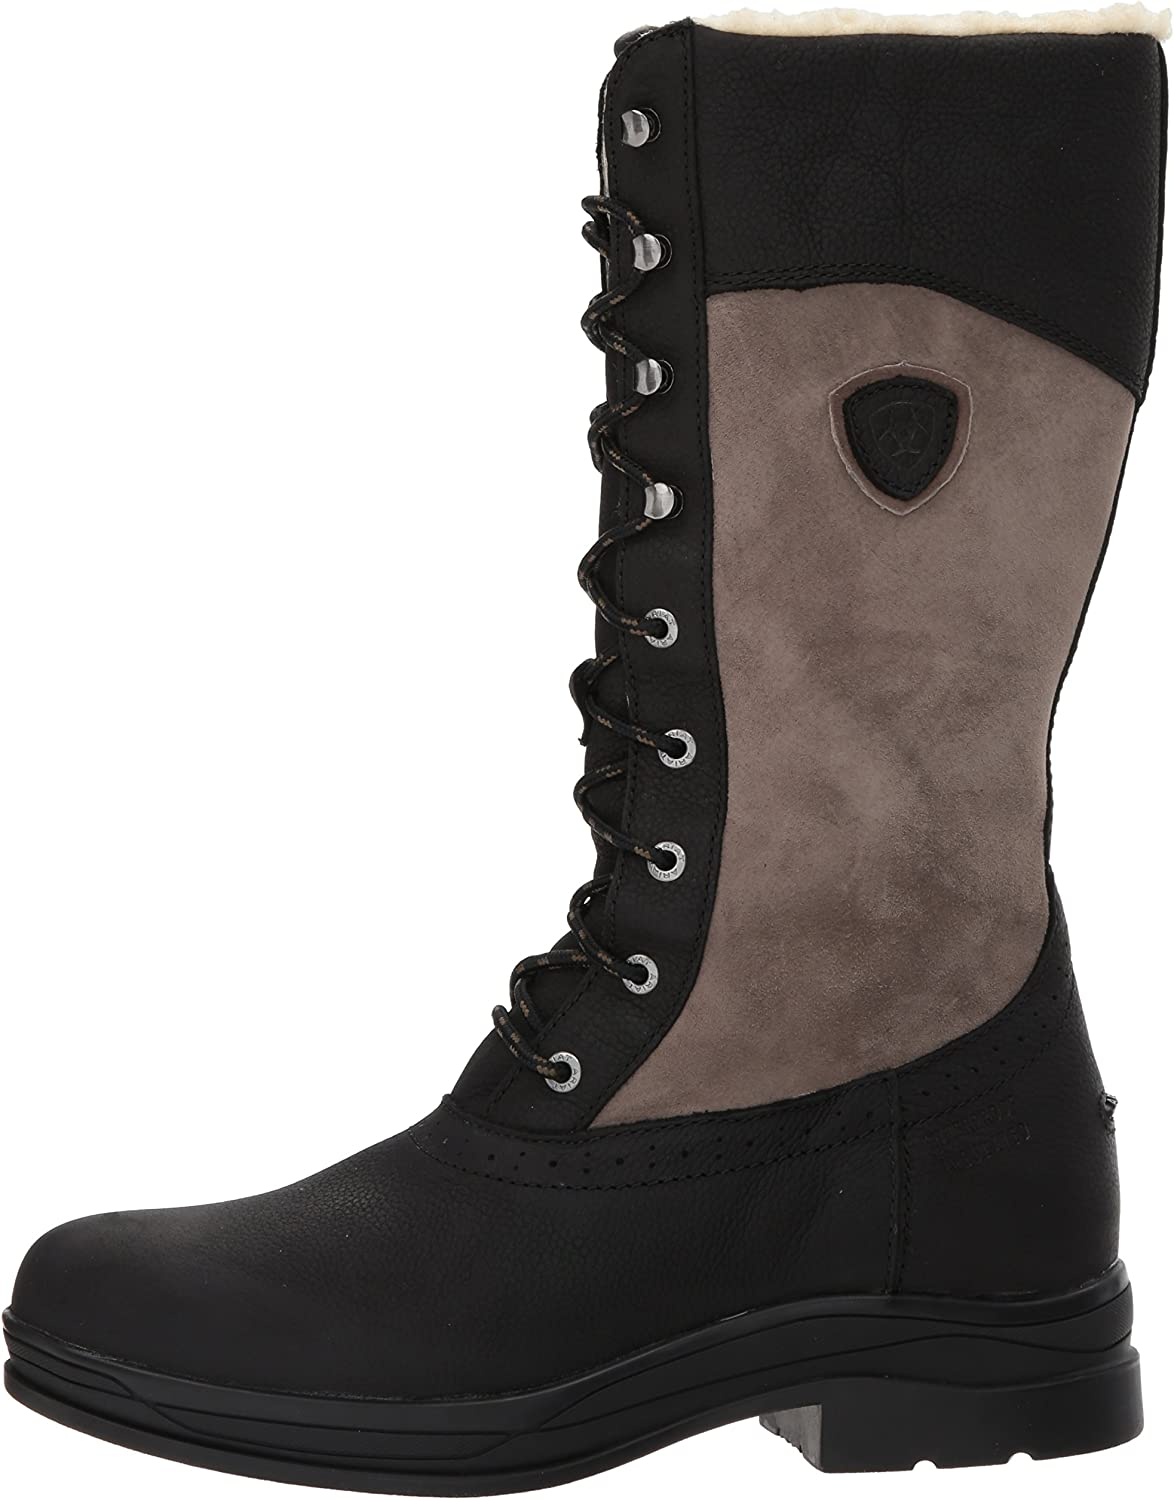 Ariat Wythburn H2O Insulated Womens Country Boots